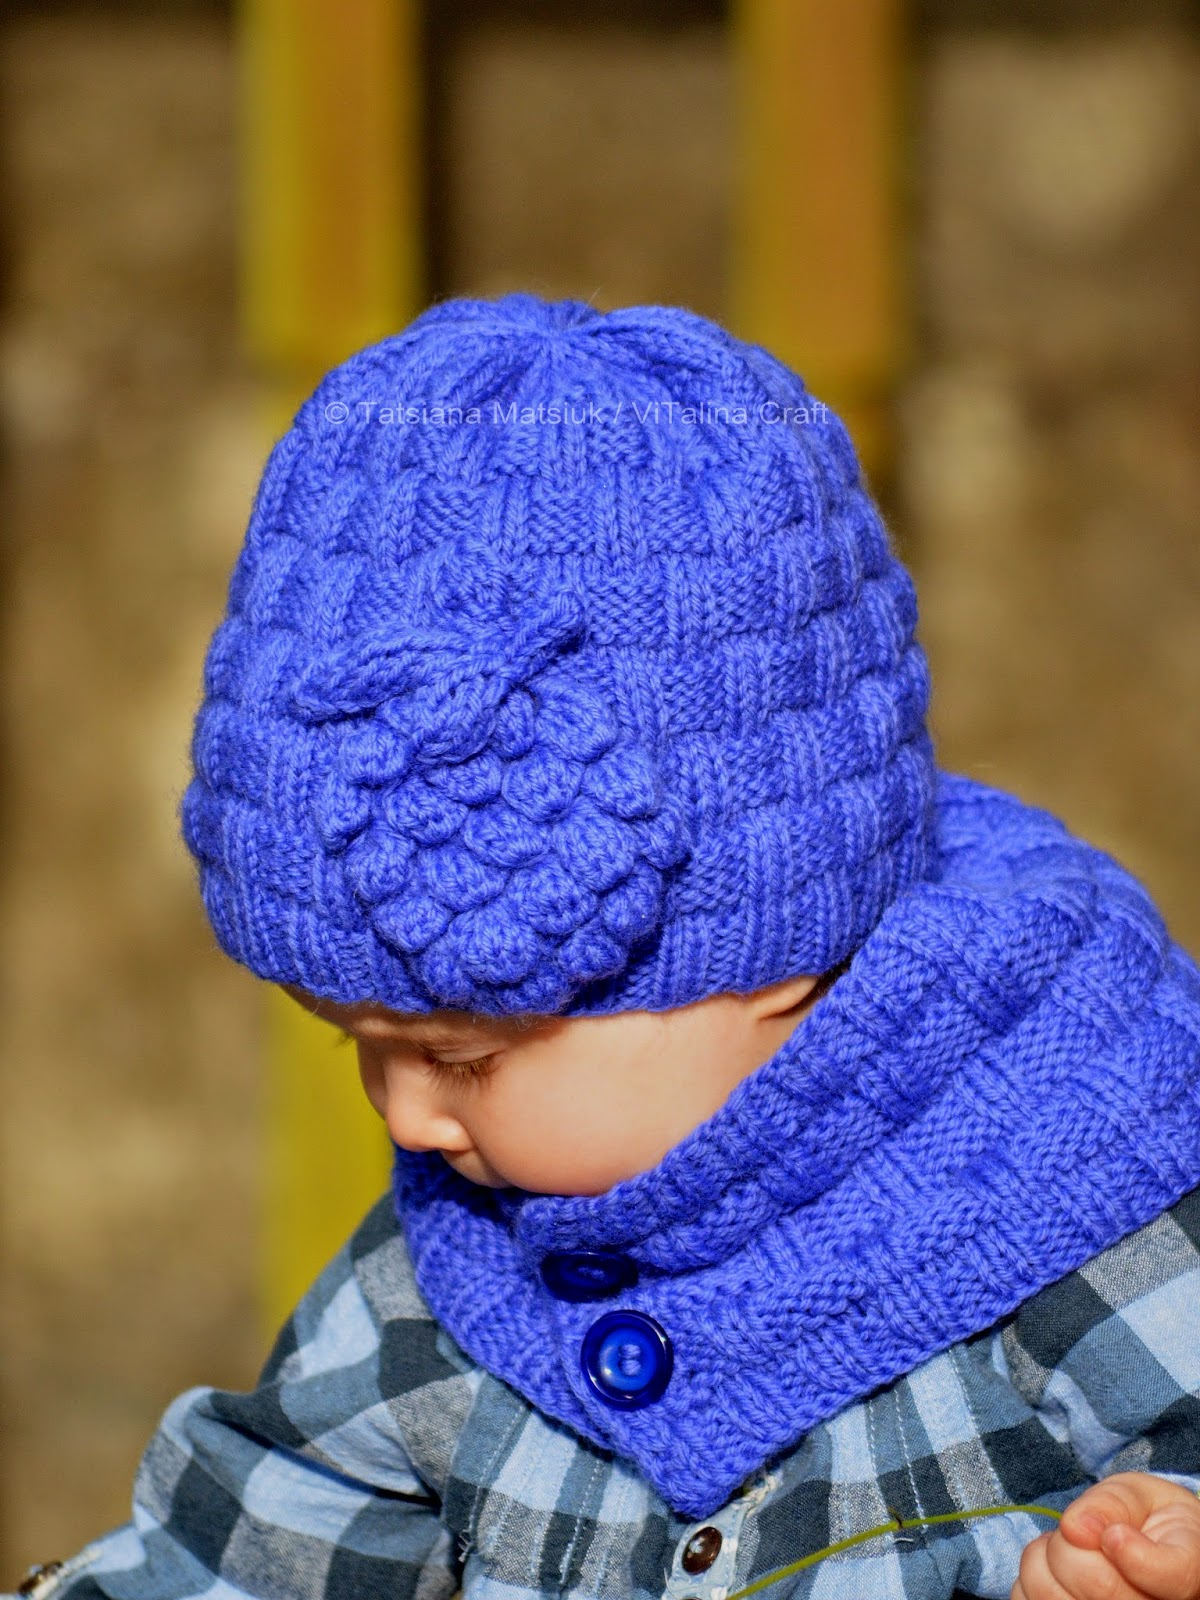 Knitting Pattern For Baby Hat And Scarf : Knitting Pattern Grapevine Hat and Scarf Baby Child and Adult sizes eBay